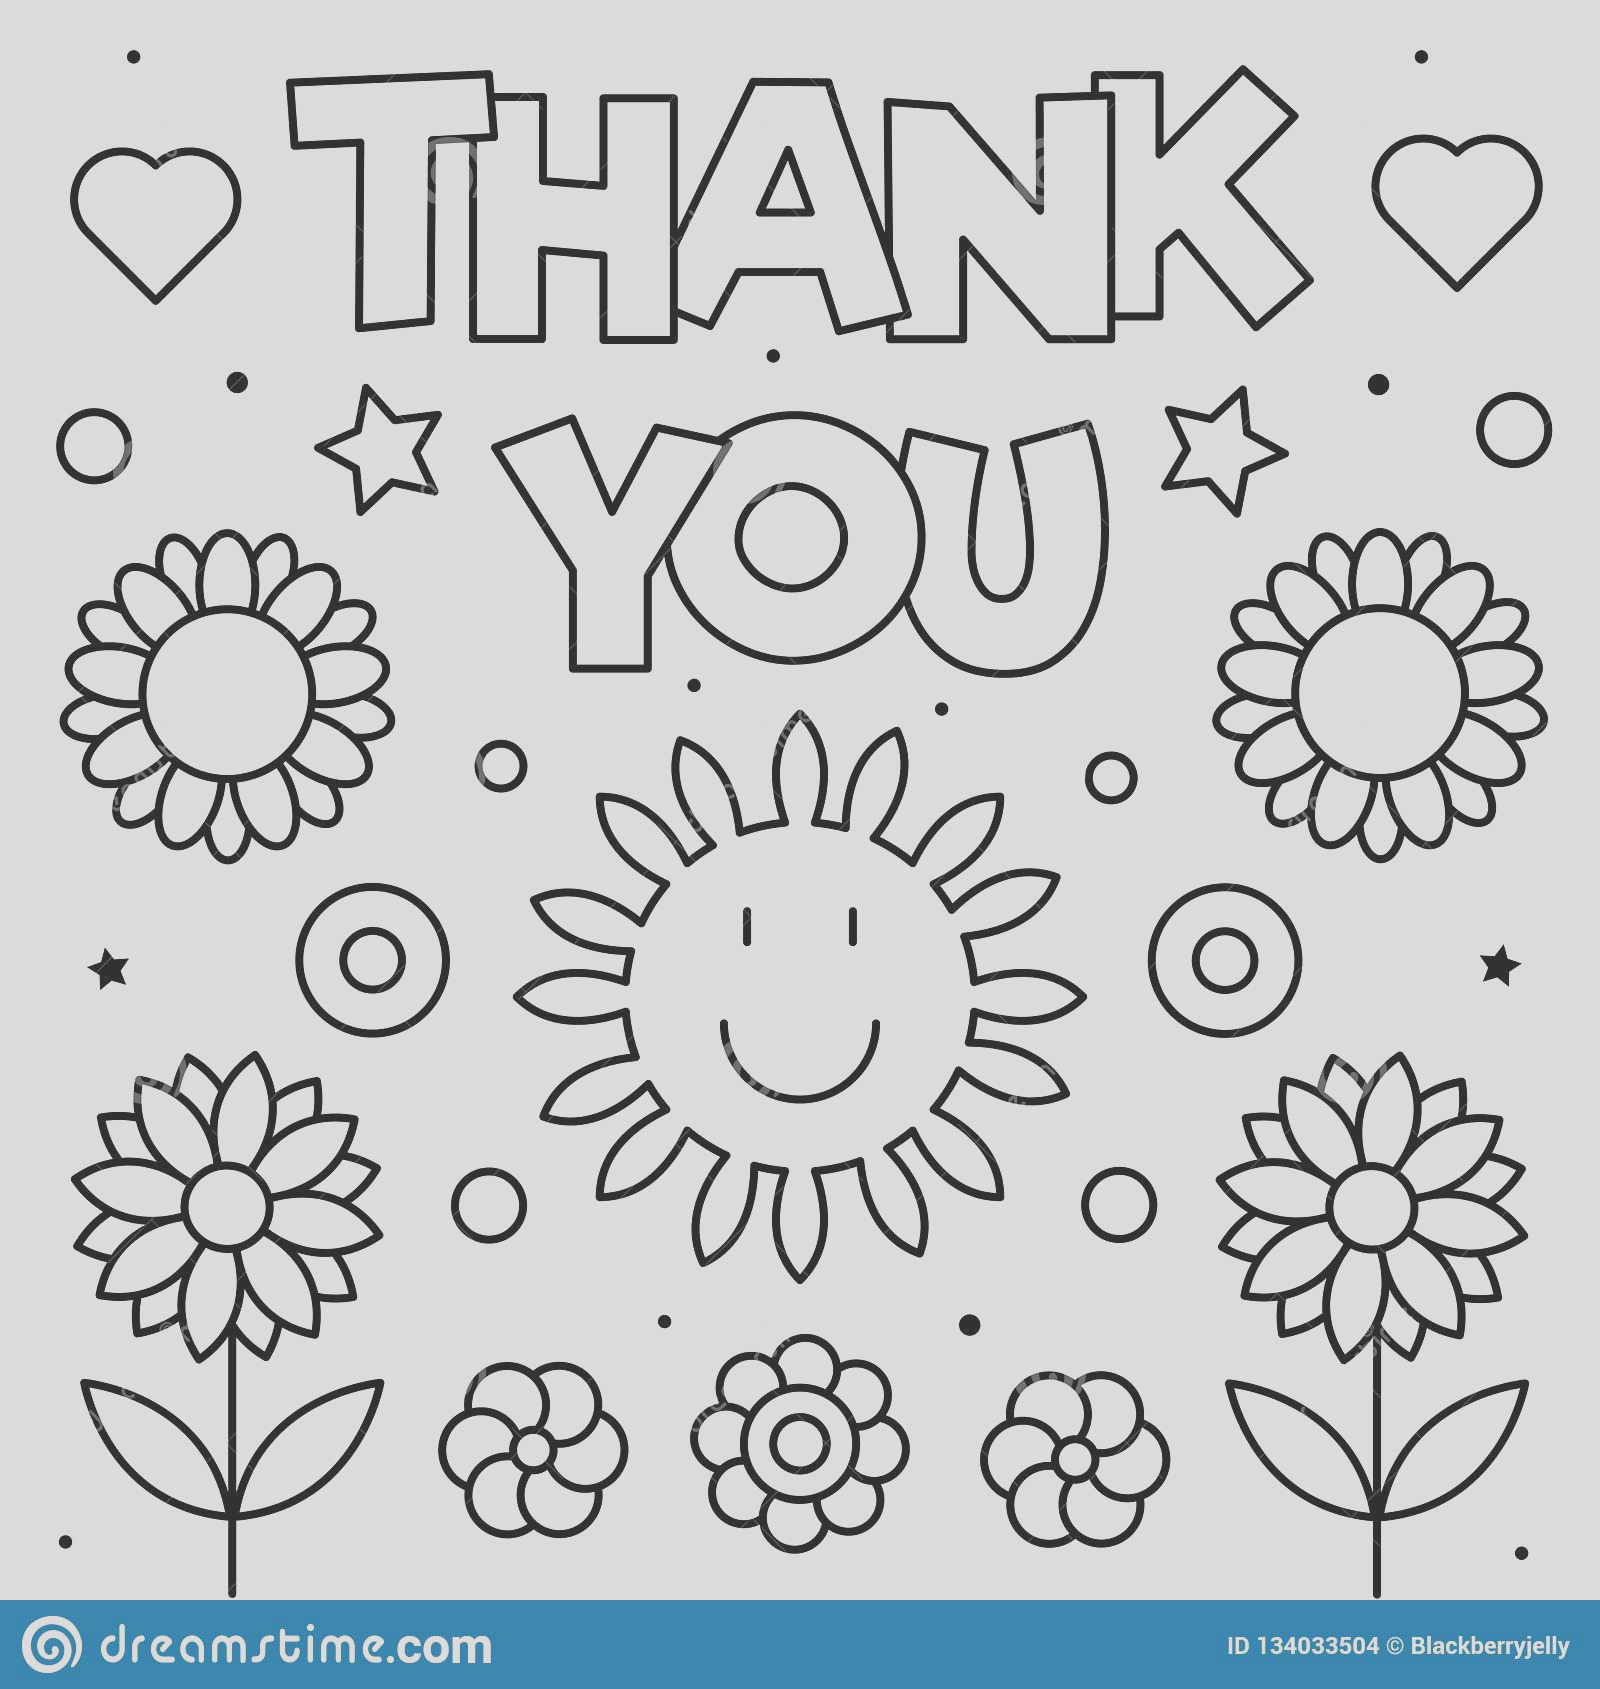 thank you coloring page black white vector illustration thank you coloring page black white vector illustration image